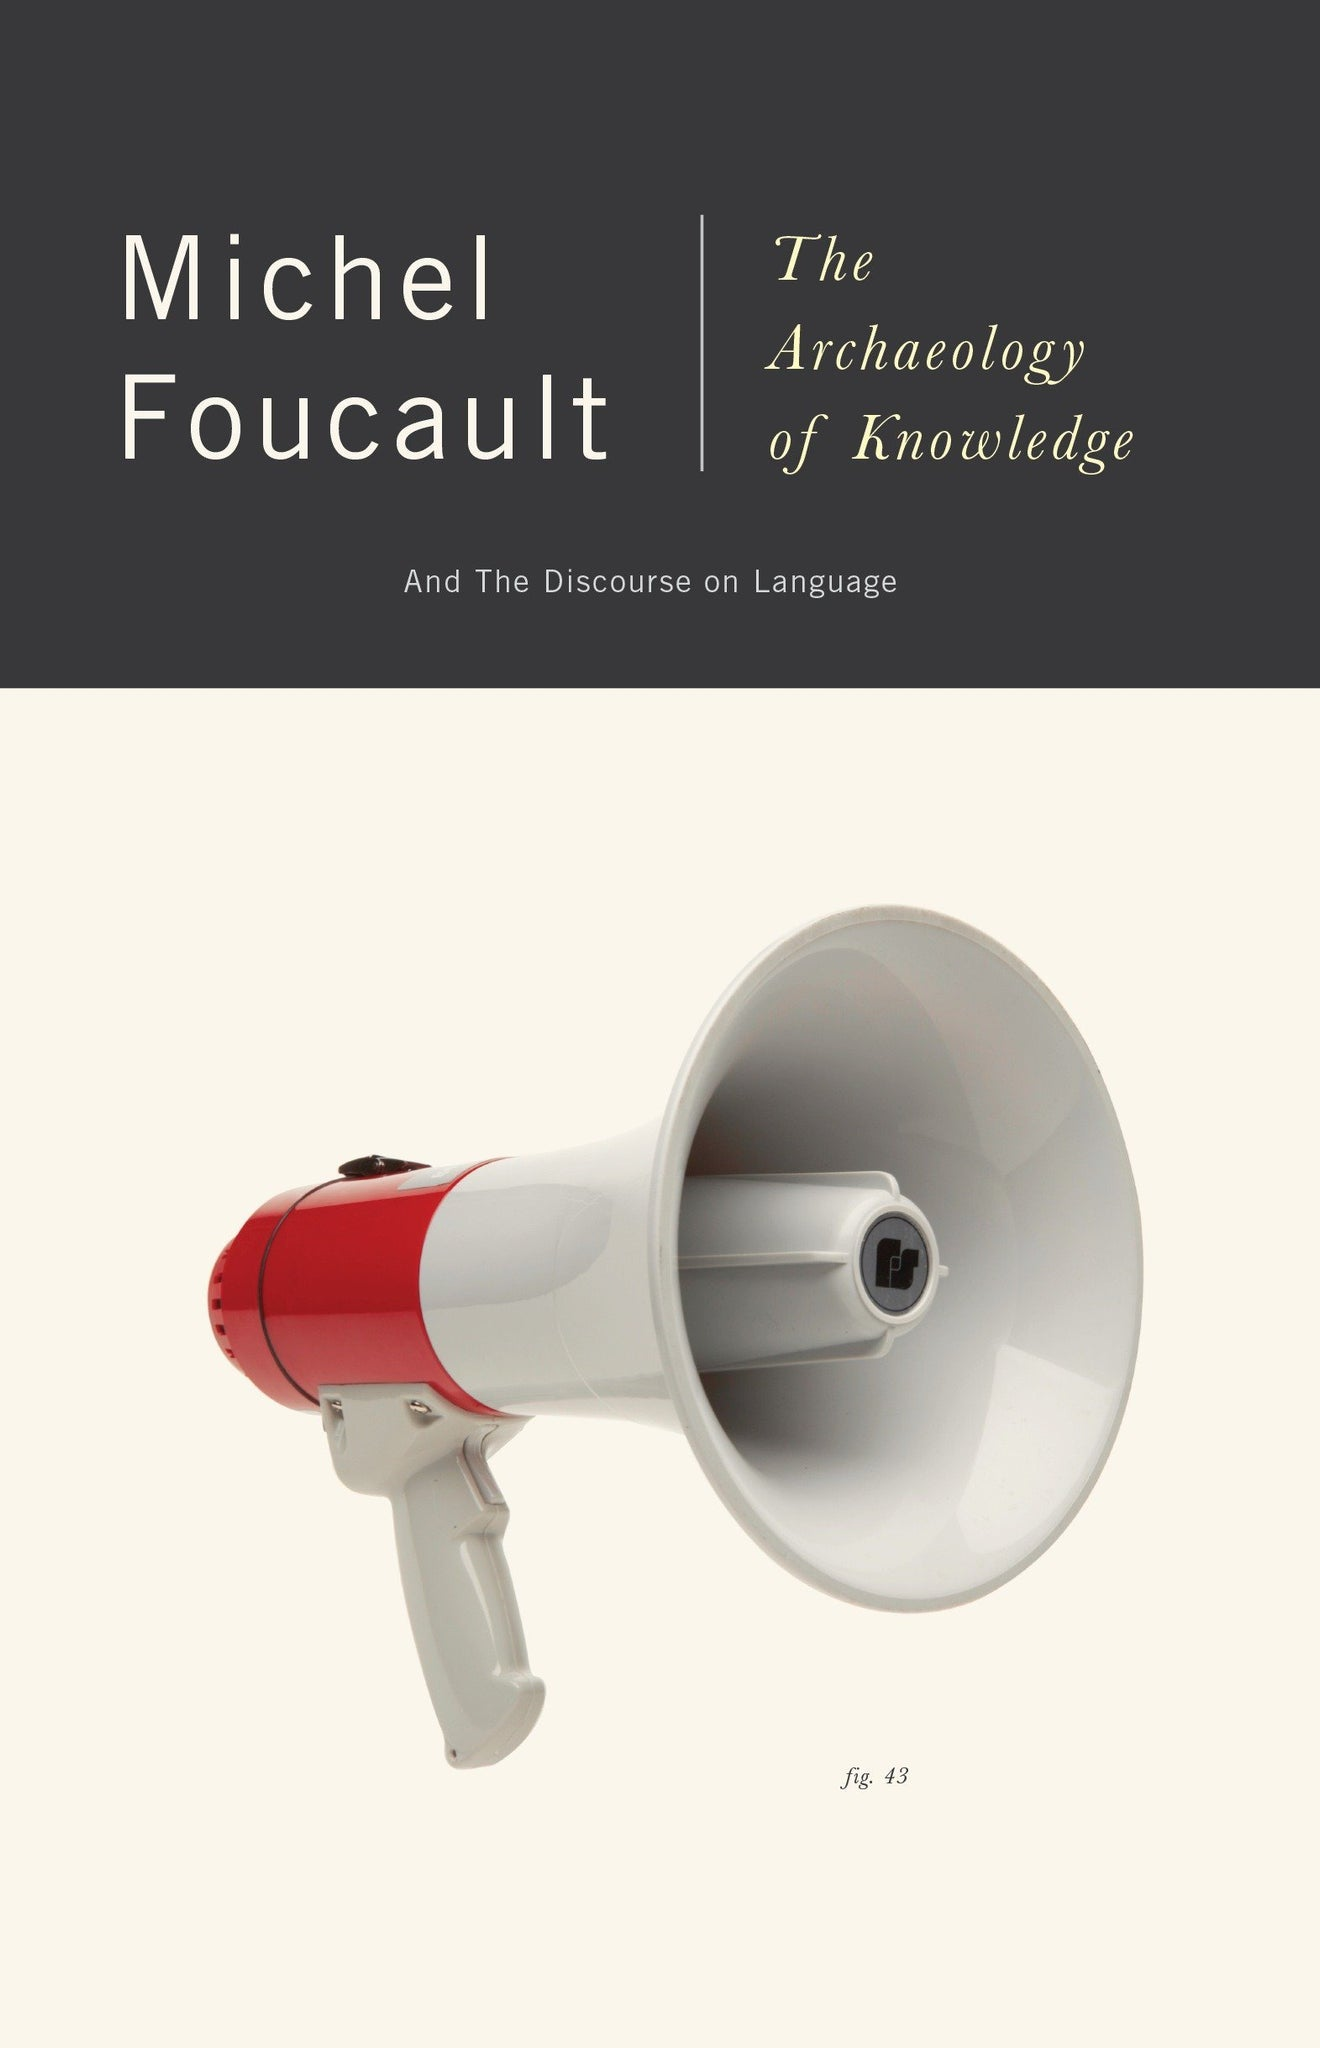 The Archaeology of Knowledge by Michel Foucault - Book at Kavi Gupta Editions